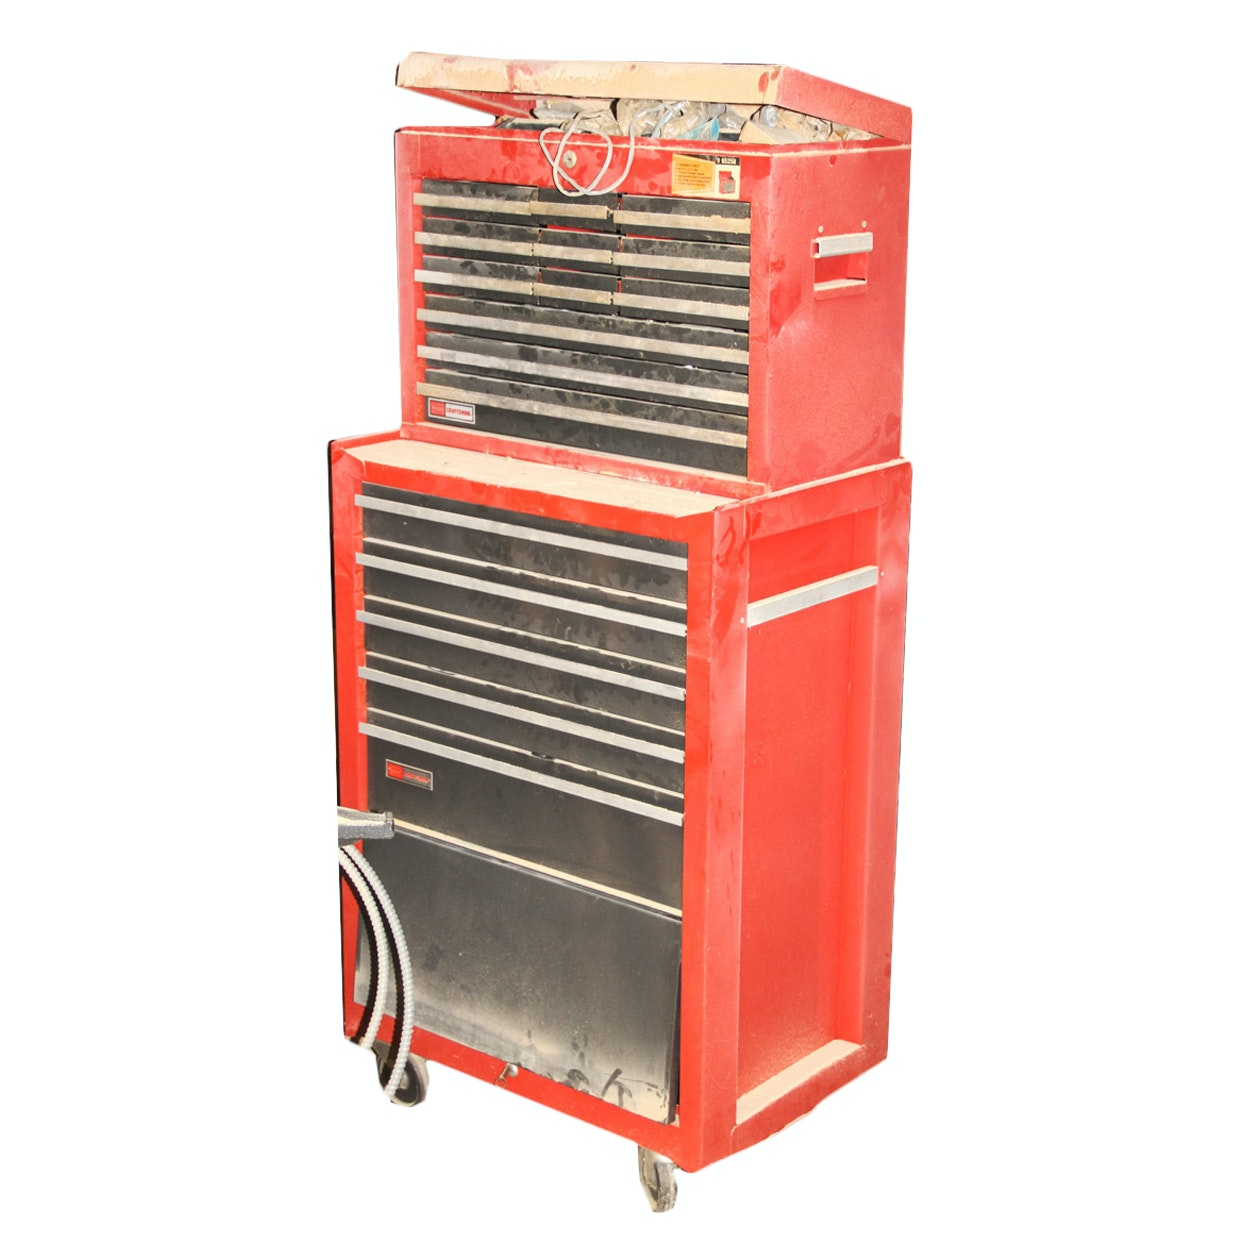 Mechanic's Rolling Cart with Contents by Craftsman